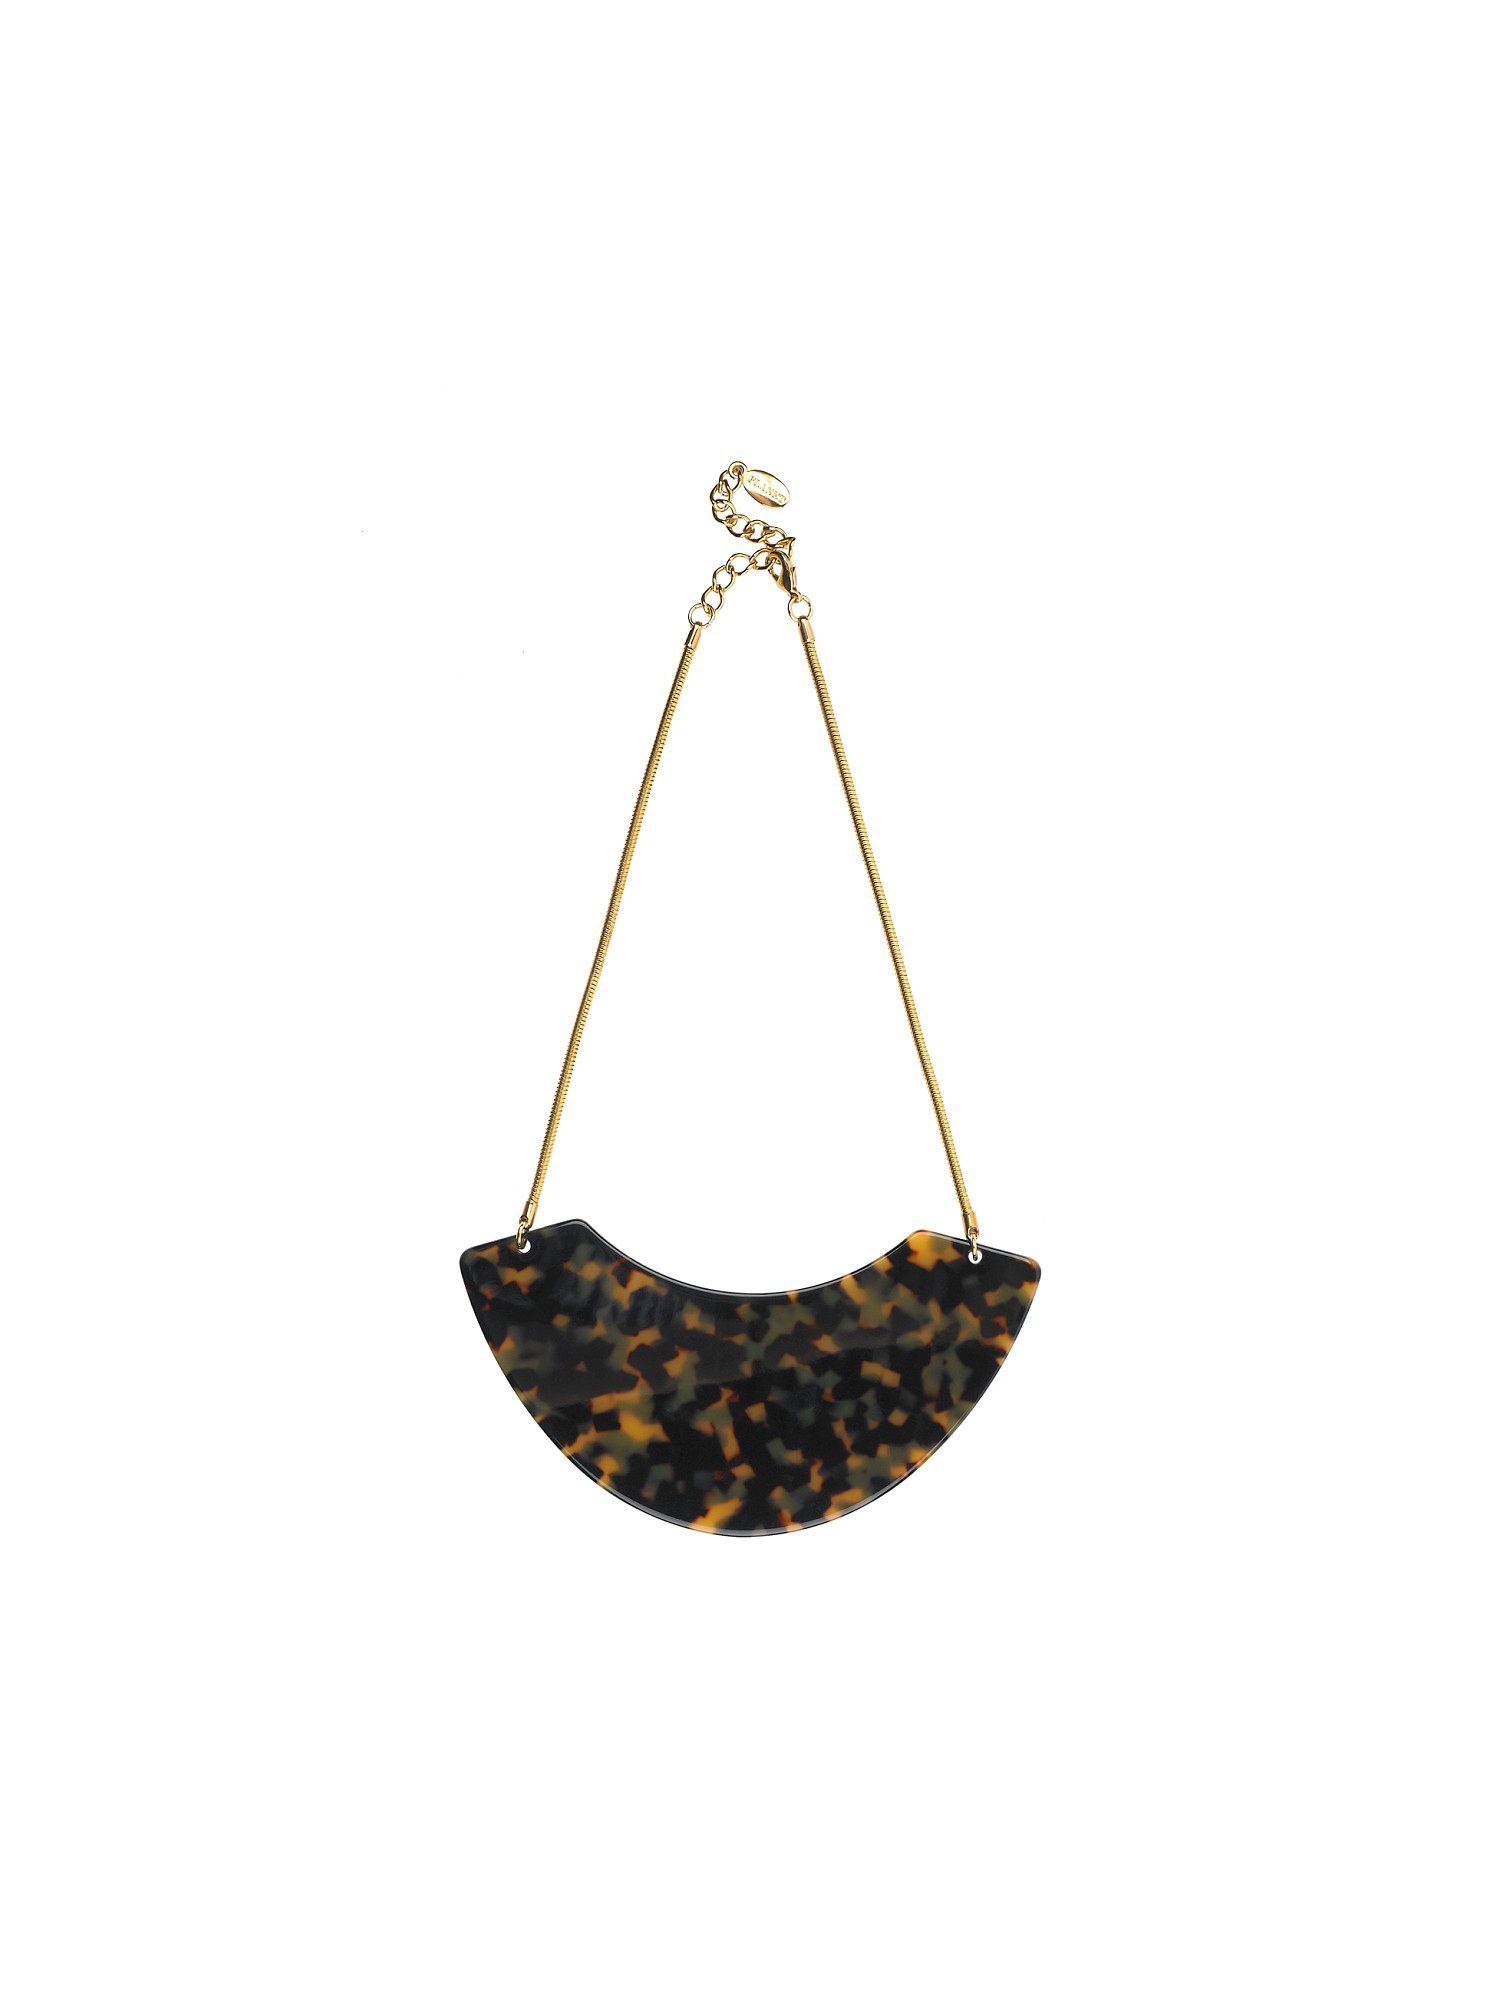 Planet Tortoiseshell bib necklace